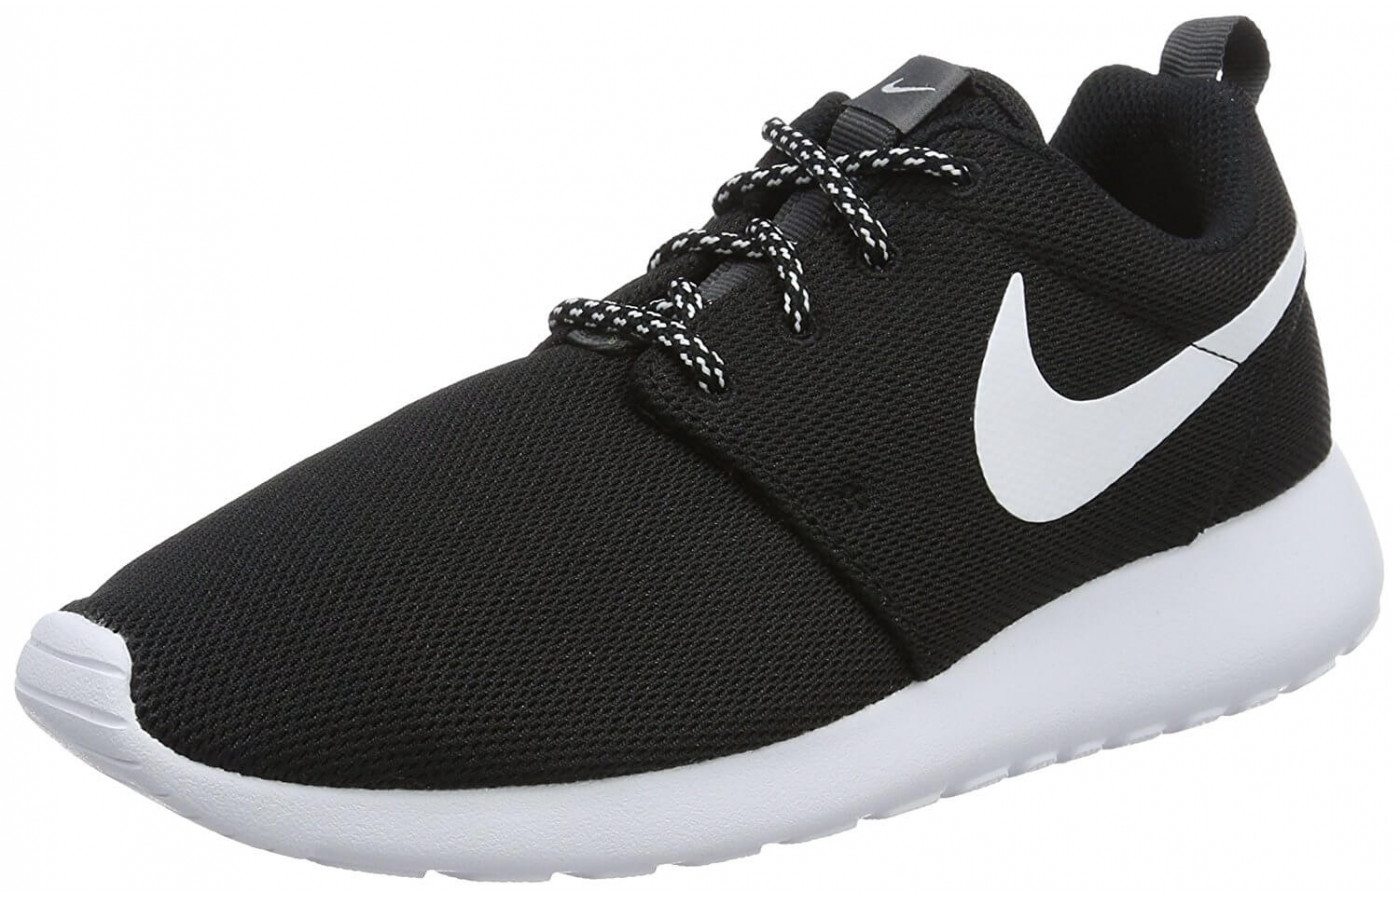 99accf128f99 Nike Roshe One Reviewed - To Buy or Not in May 2019